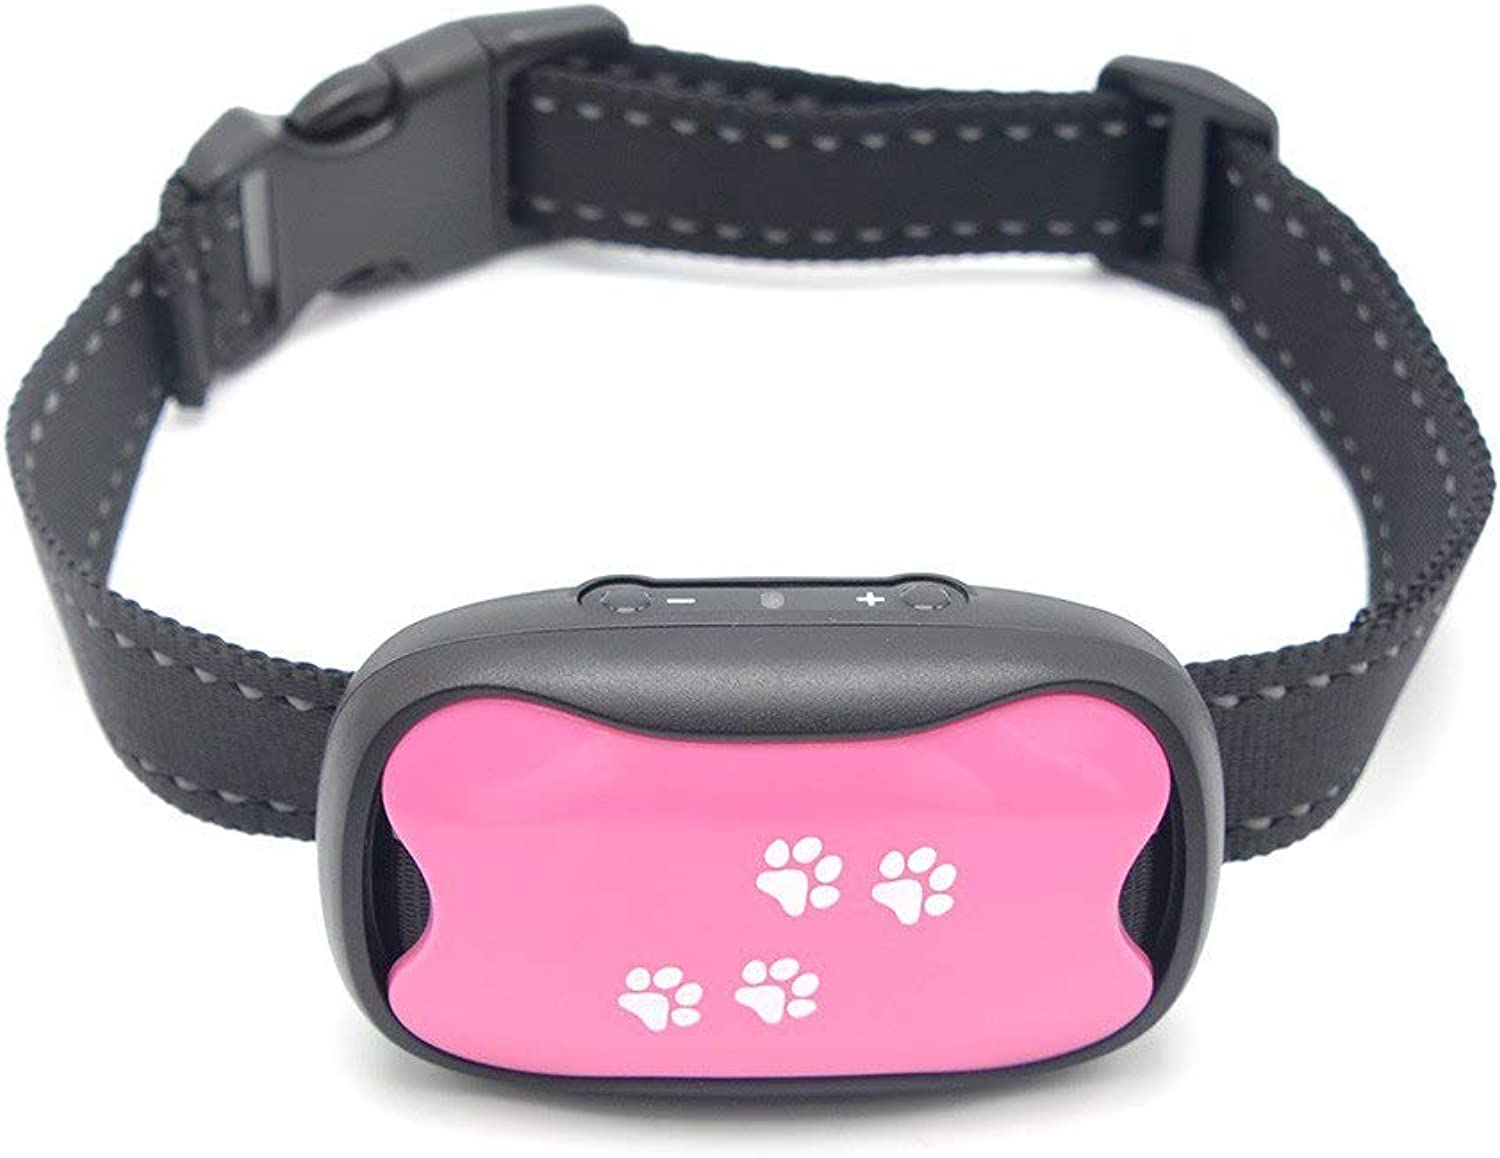 Dog Bark Collar  Safe Anti Barking Control Device  No Shock, Remote or citronella  Vibration and Sound Dog Collars  Best Non Shock Stop Barking Training Collar for Small Medium Large Sized Dogs